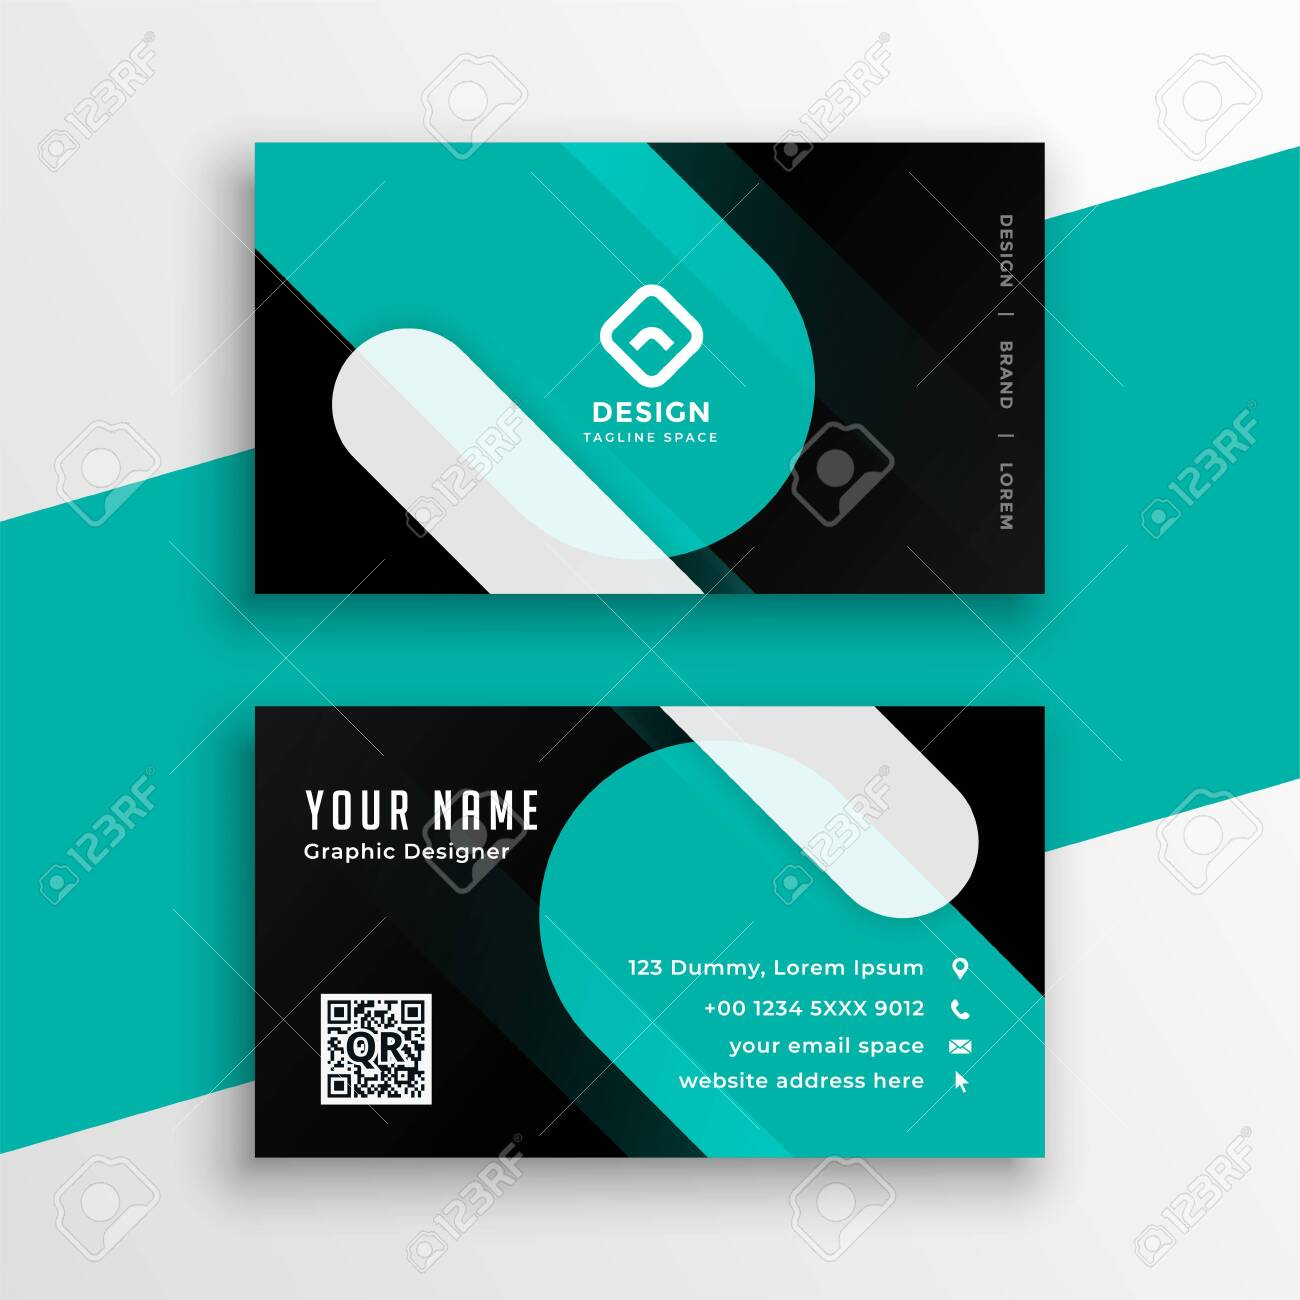 modern turquoise and black business card template design - 154341697